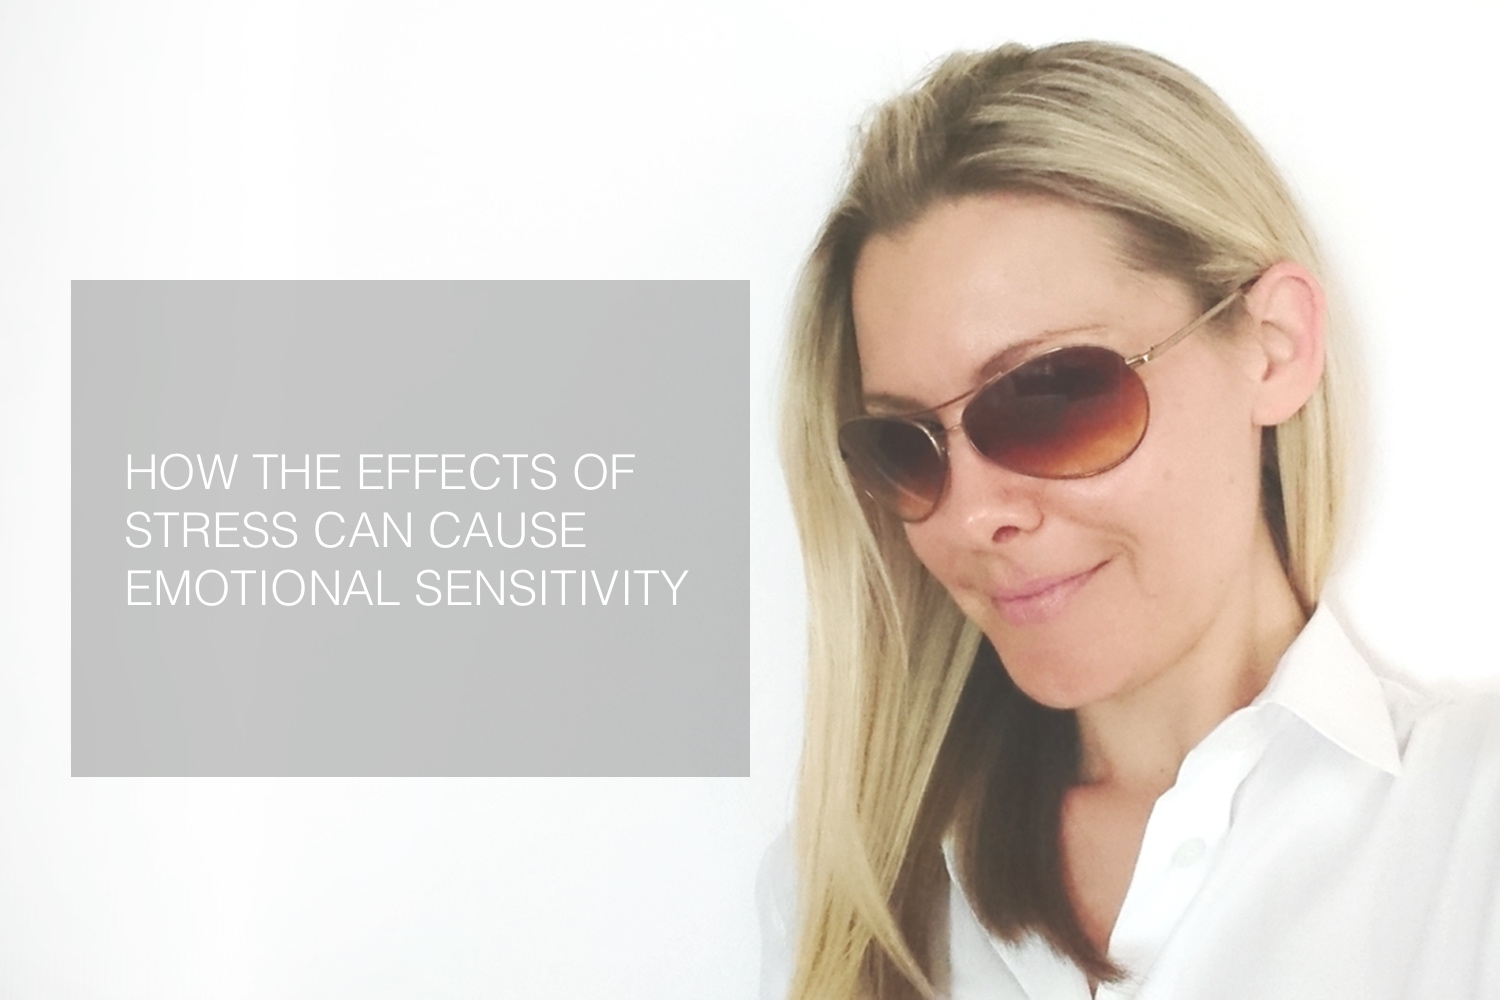 How The Effects of Stress Can Cause Emotional Sensitivity